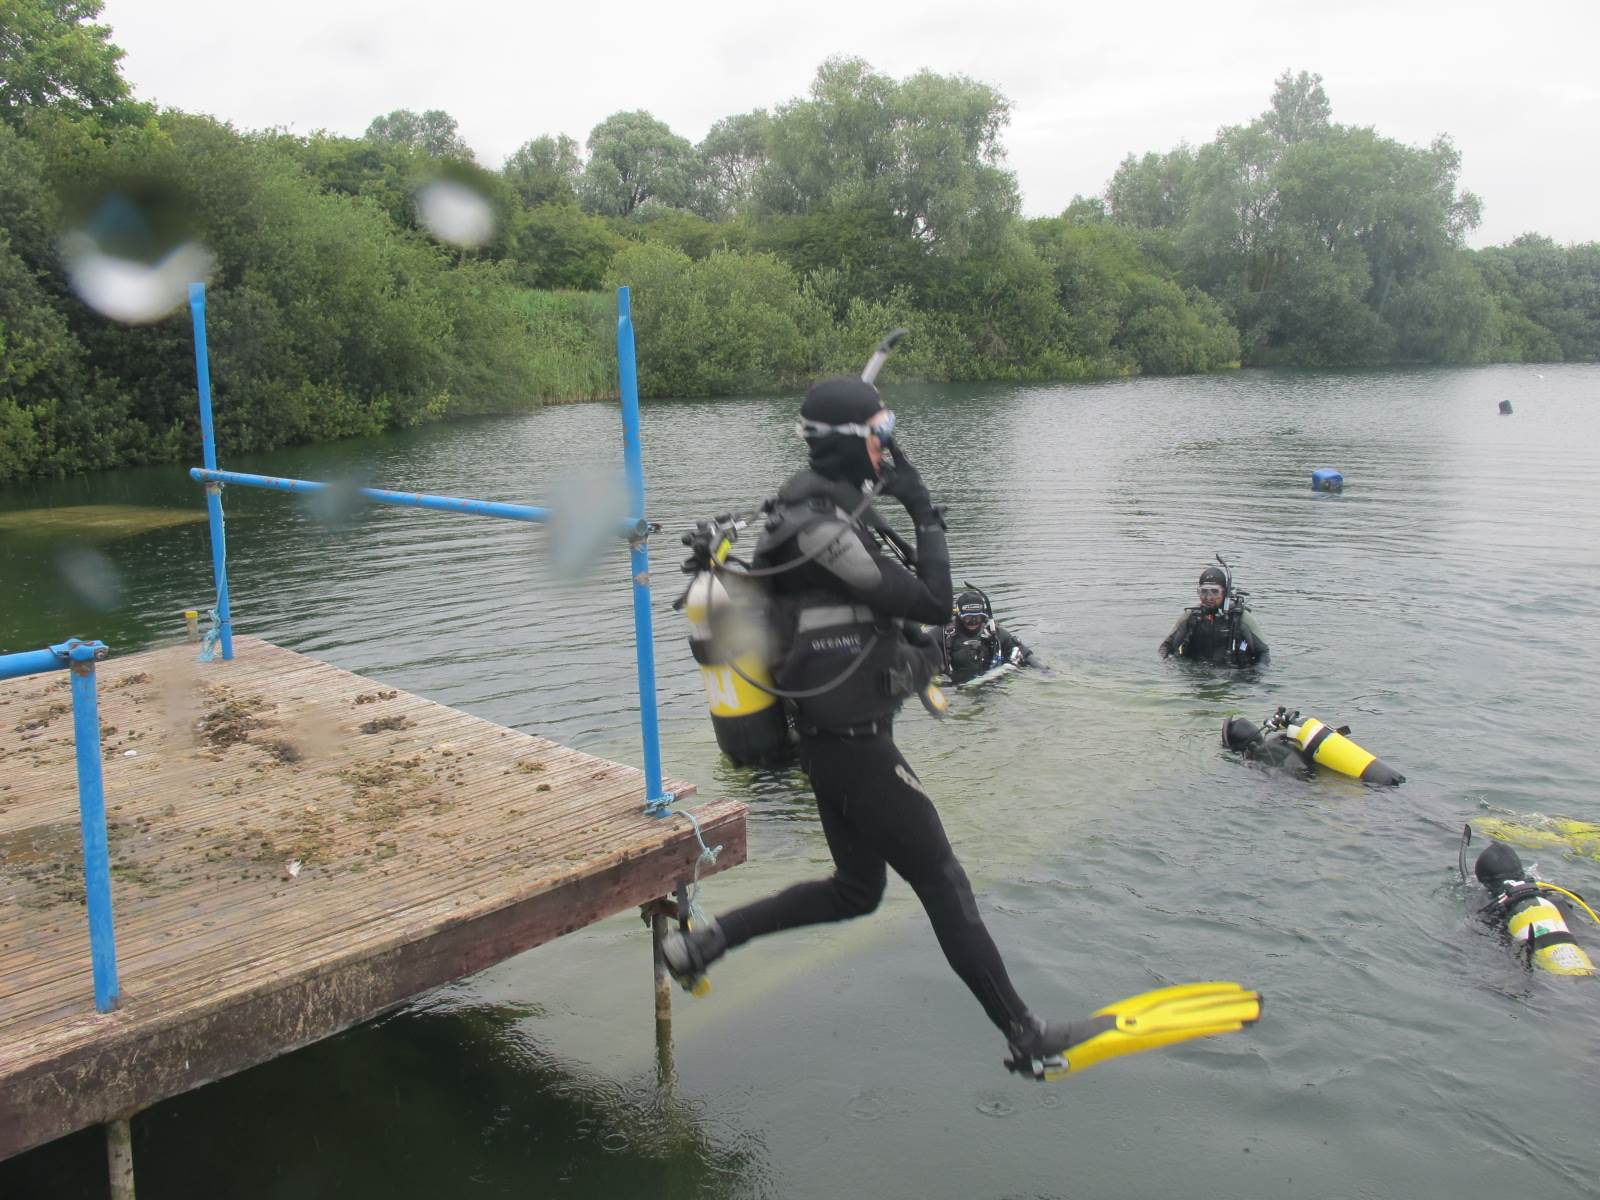 PADI open water scuba diving course training in Cambridge